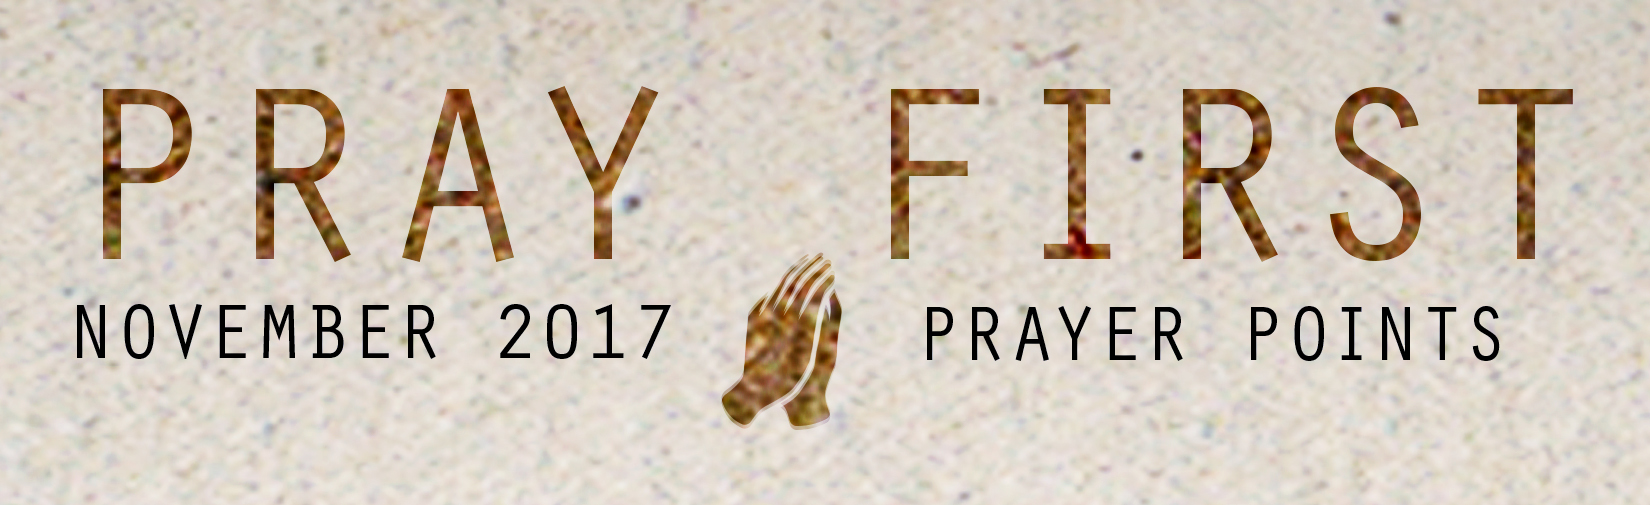 PRAY FIRST Nov 2017 banner.jpg